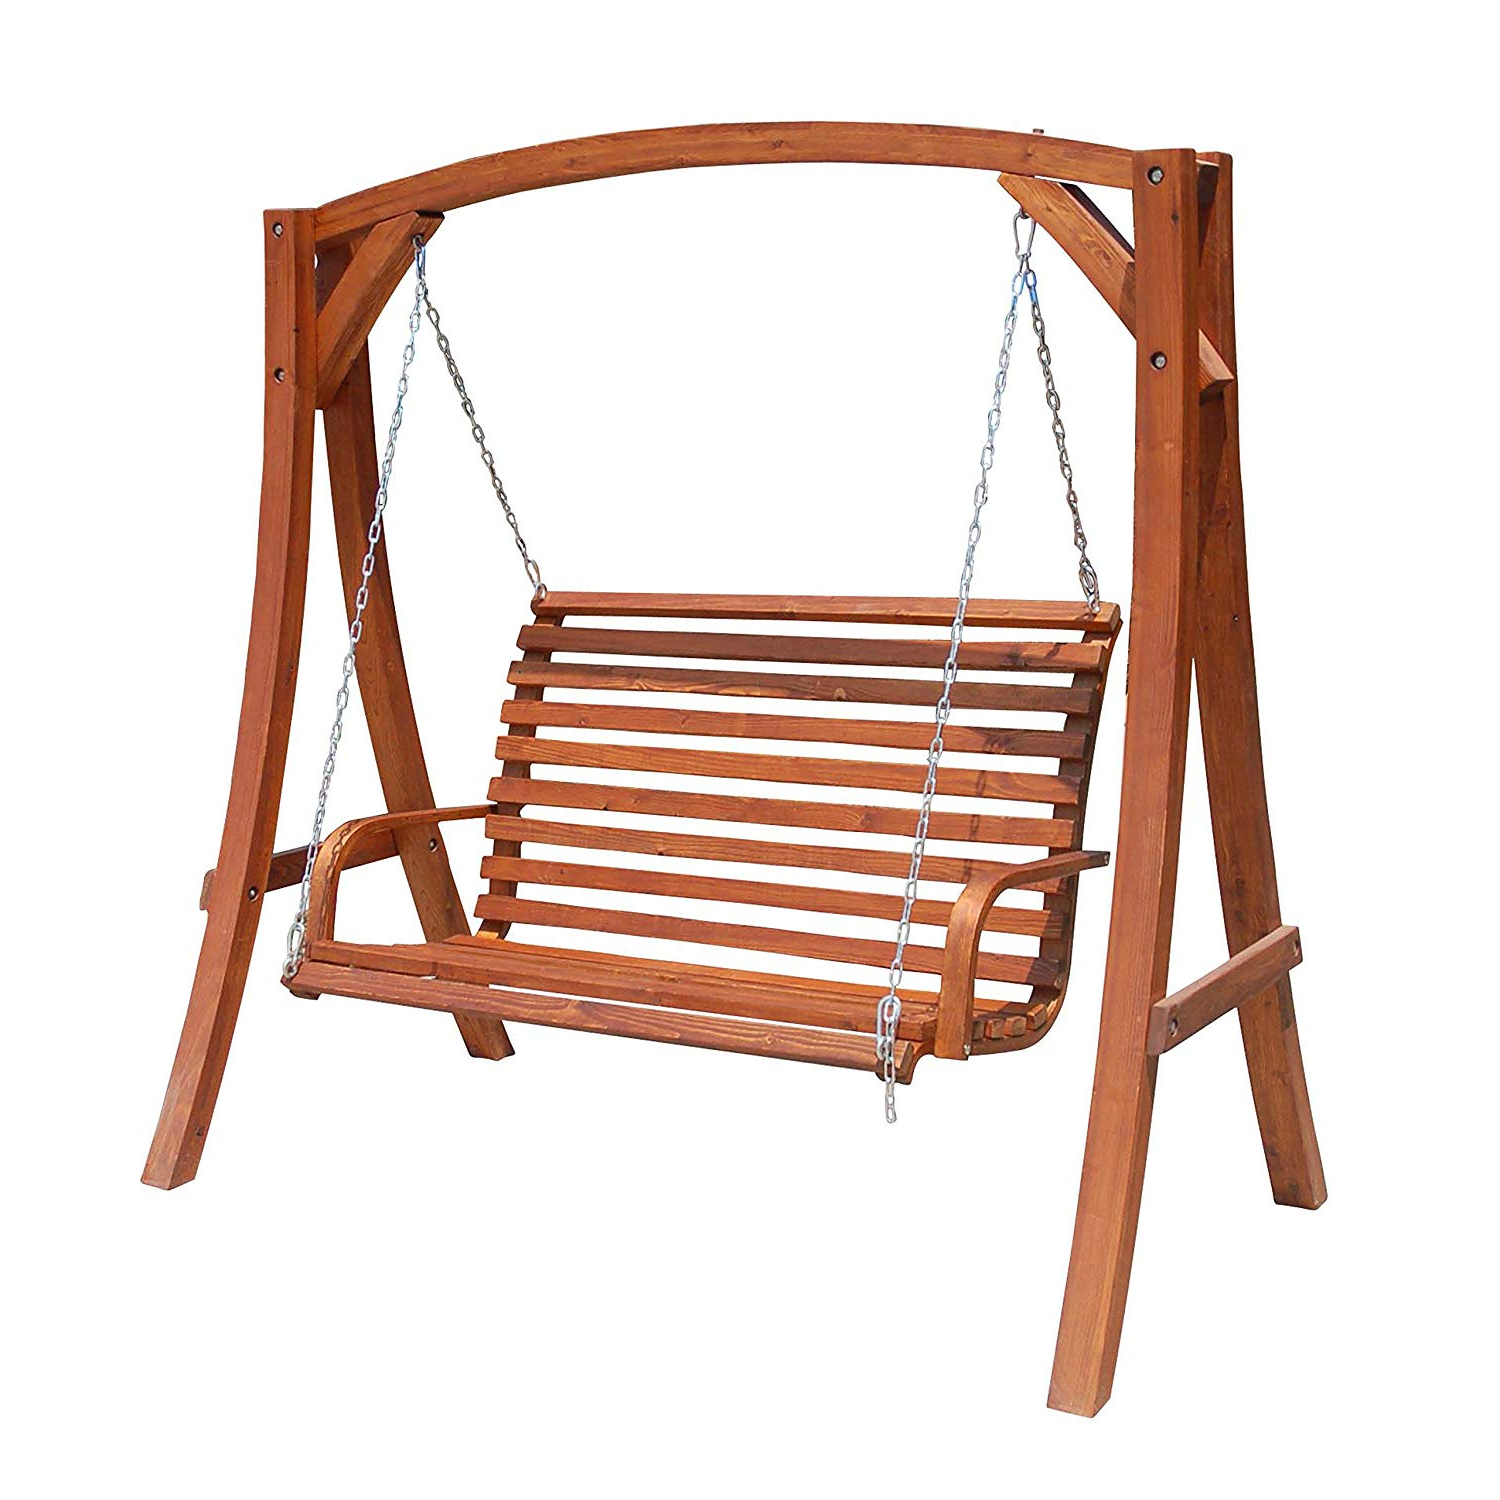 Latest Amazon : Porthos Home Antique Revival Annika Yard Swing Intended For Rosean Porch Swings (View 12 of 30)